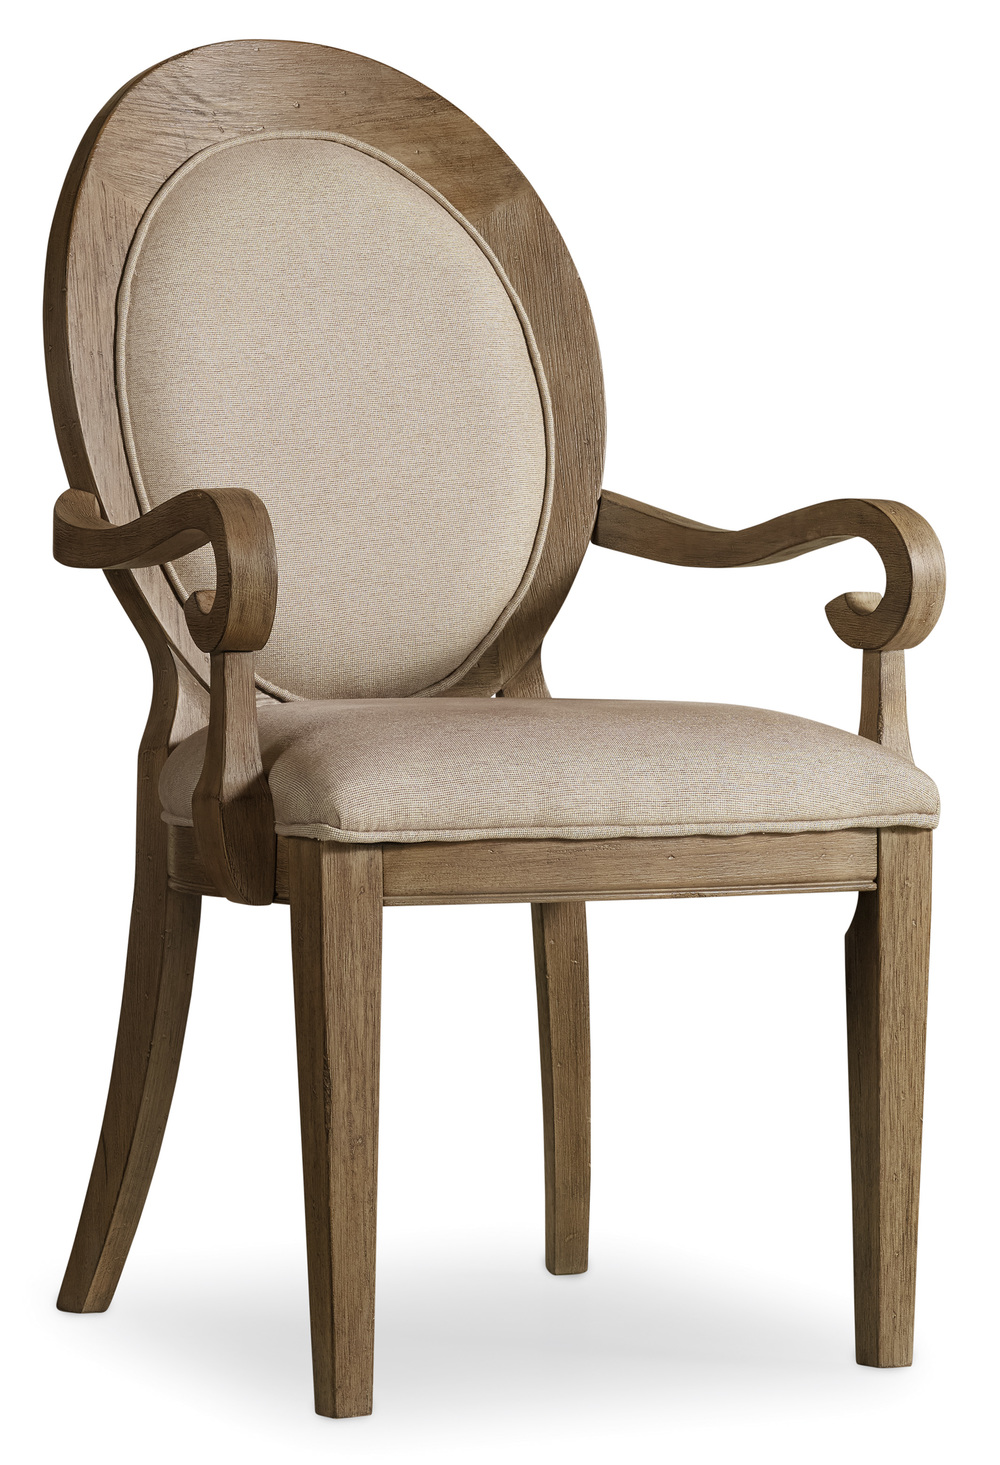 Hooker Furniture - Corsica Oval Back Arm Chair